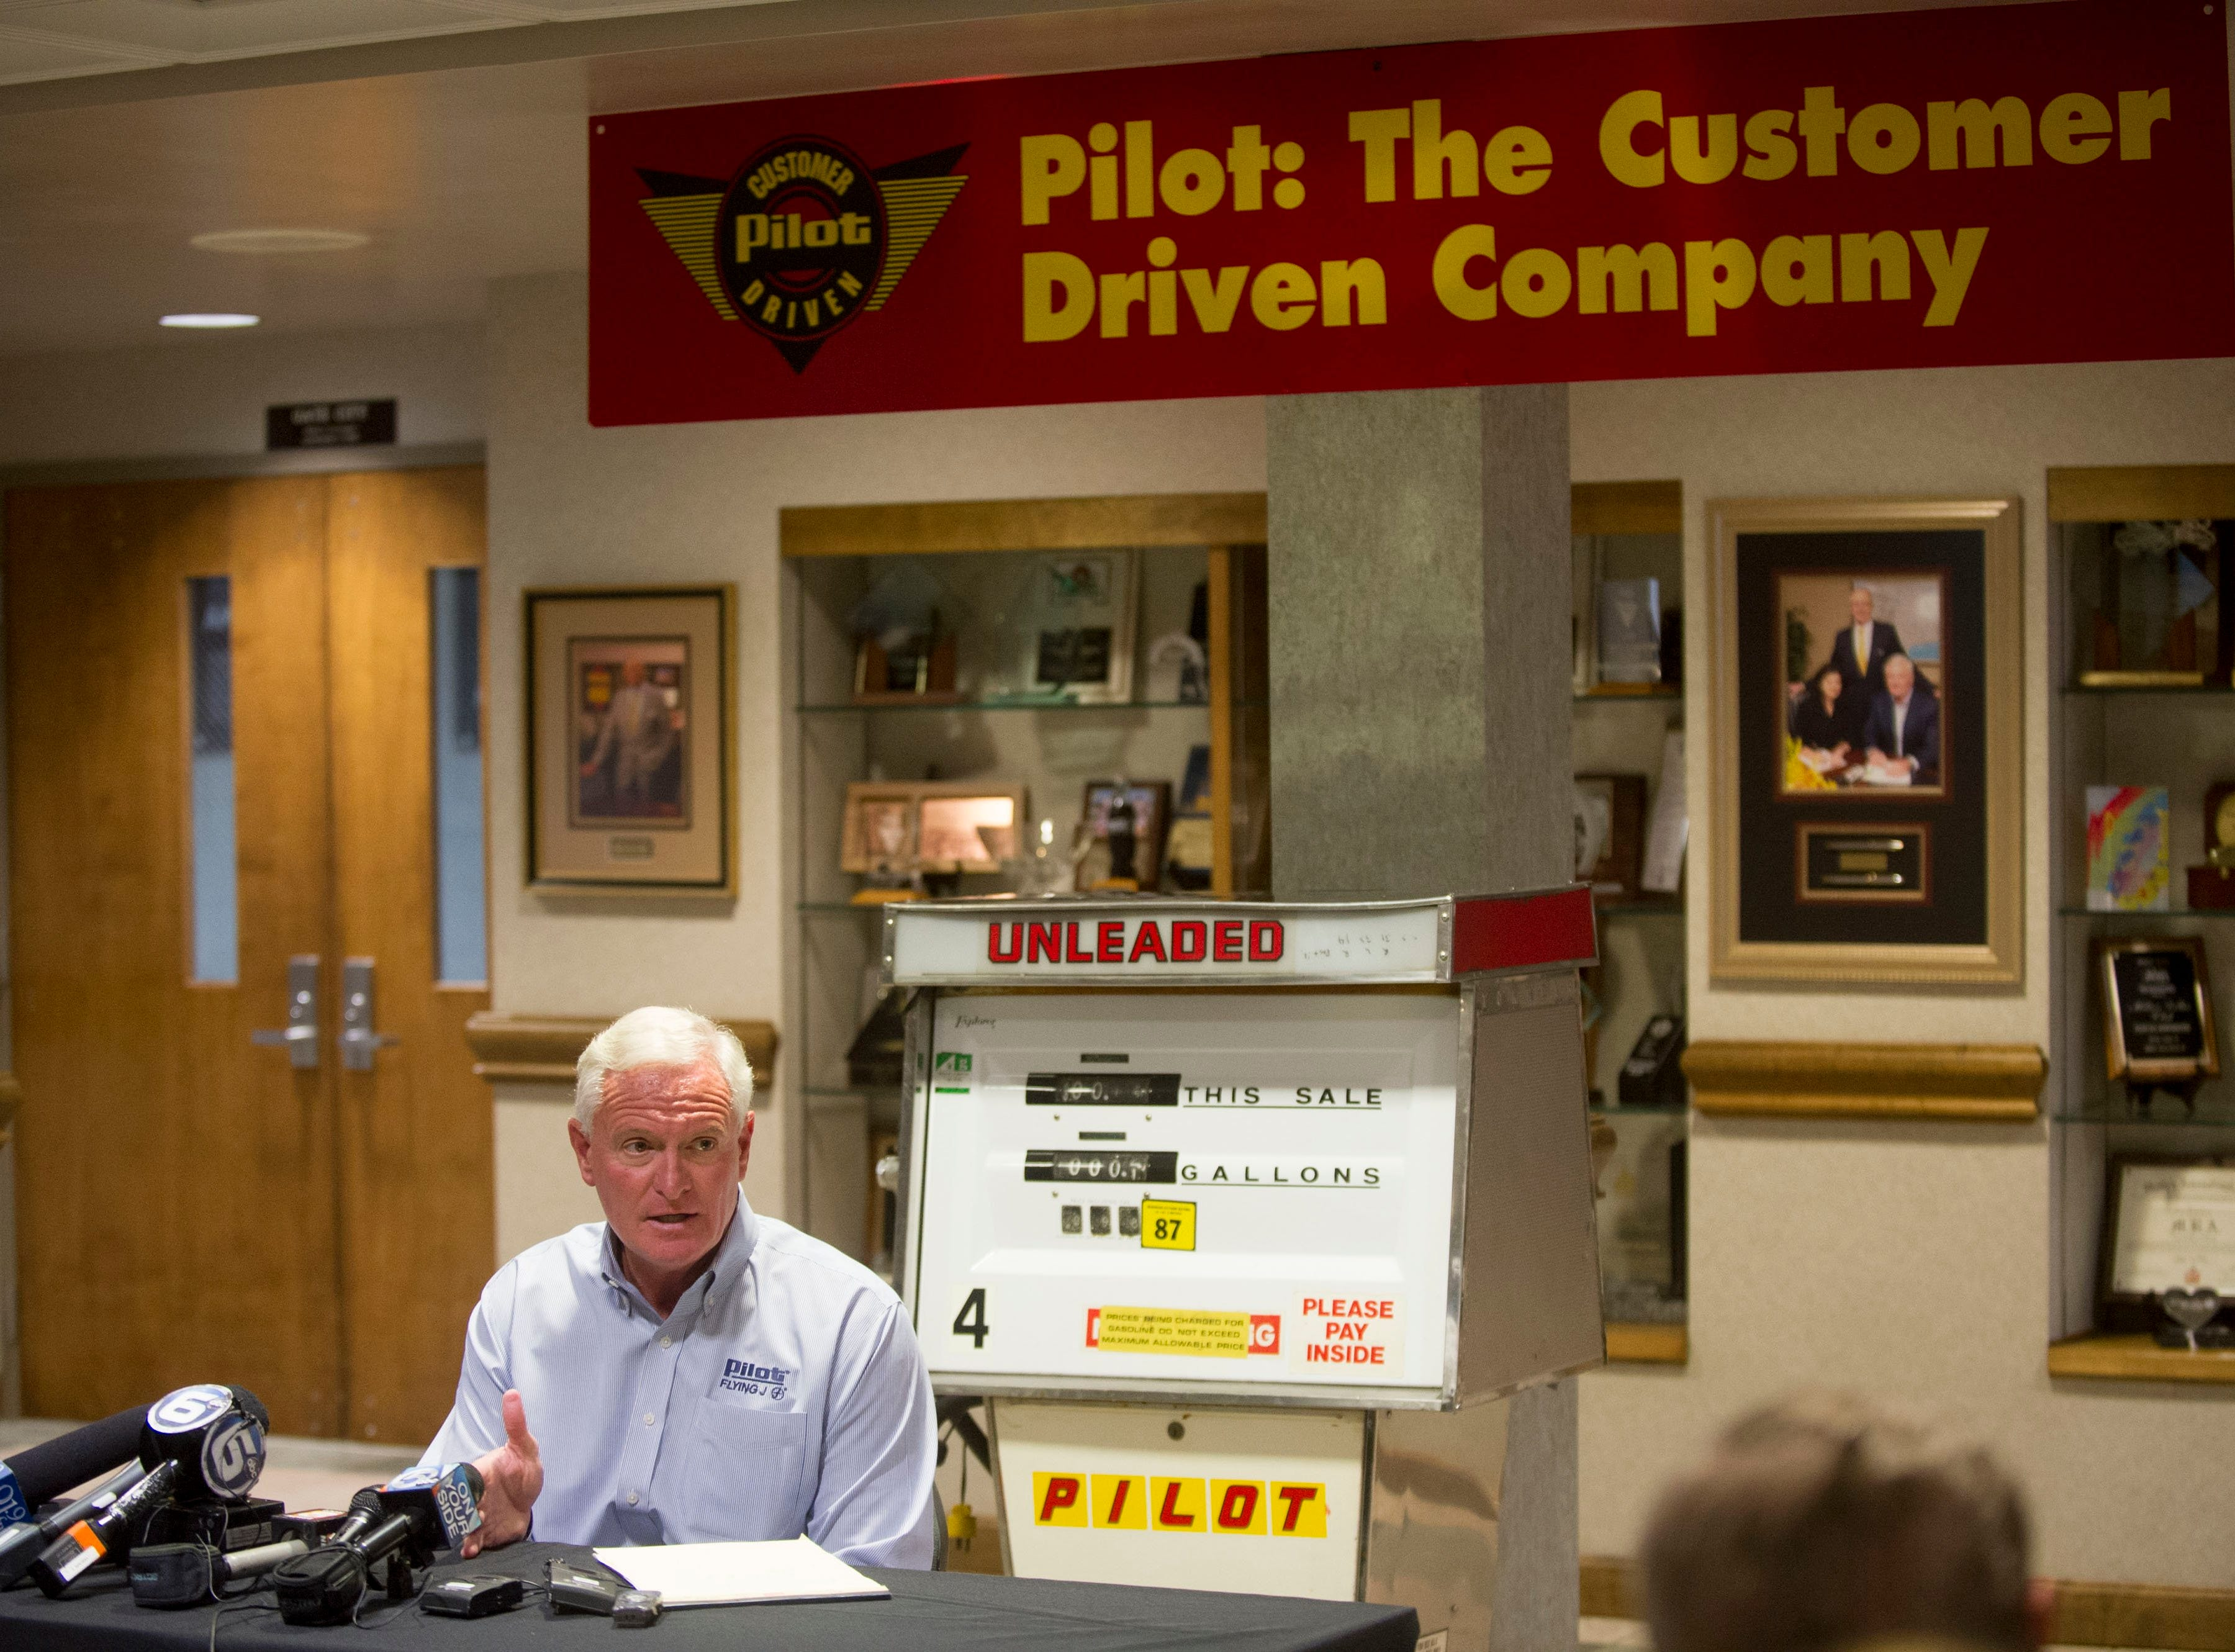 Pilot Flying J CEO Jimmy Haslam updates the public about recent changes to the company in response to the federal investigation regarding the manual rebate scandal at the Pilot Flying J  headquarters on Monday, September 30, 2013.